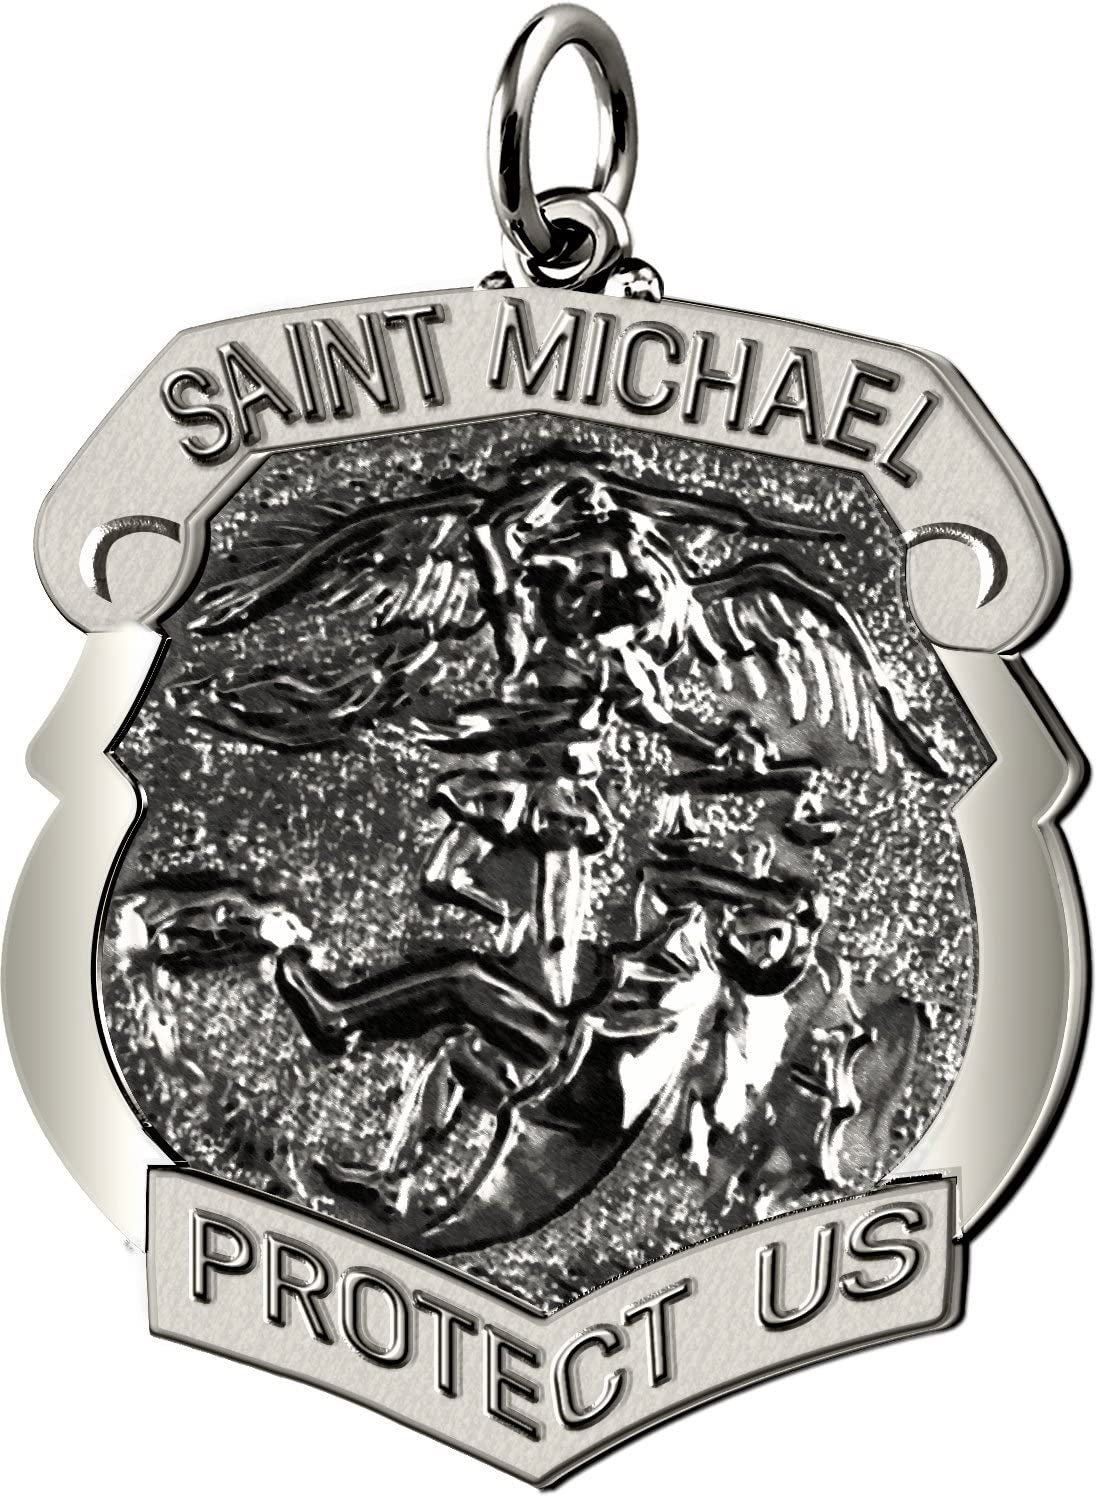 Saint Michael Pendant With Antique Finish - No Chain